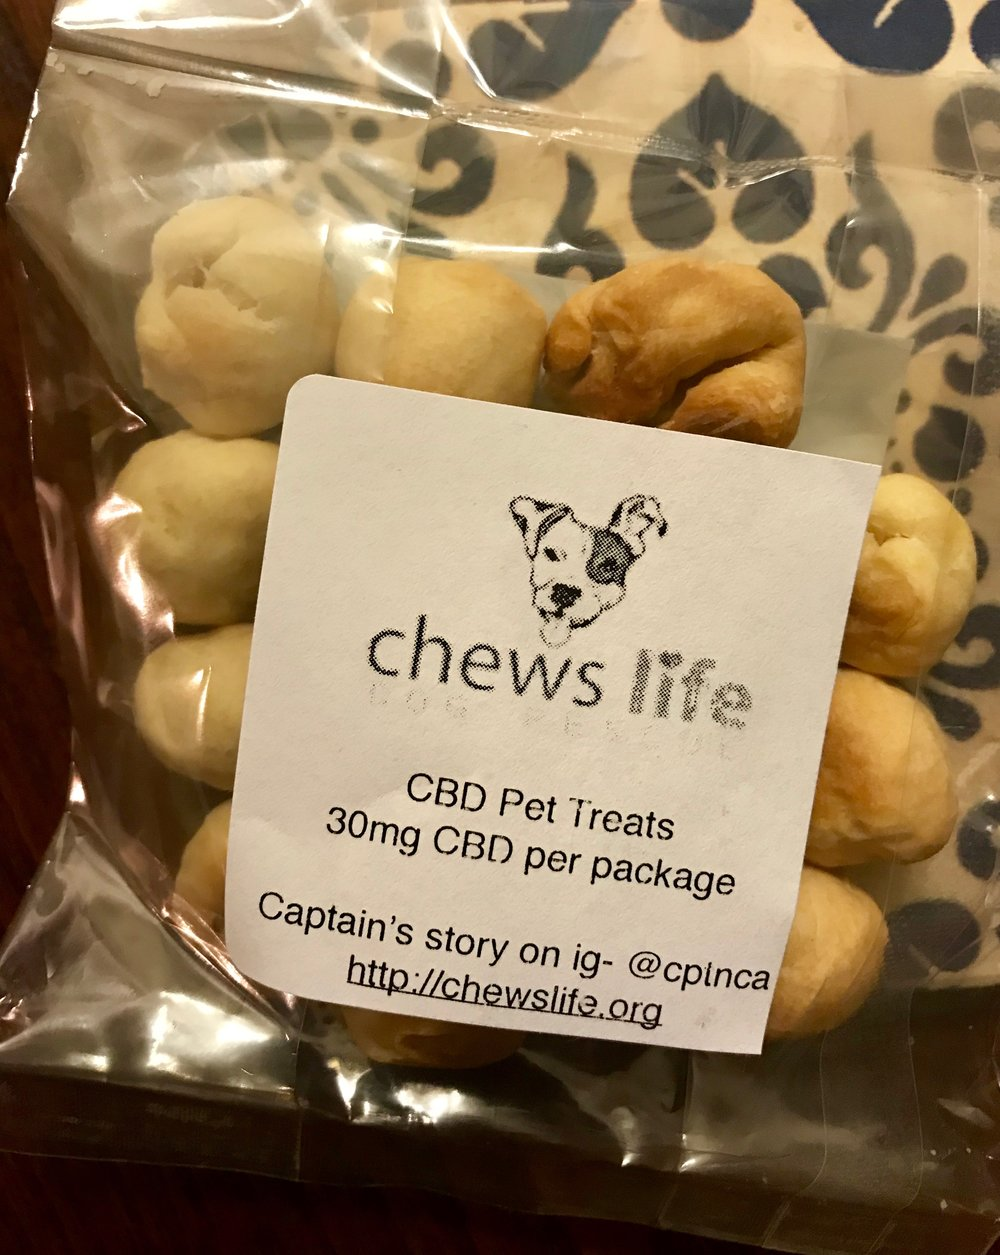 CBD Treats for your dogs! All proceeds go directly towards medical and other needs for our Chews Life Dog Rescue pups! Pricing: $10 for one; $18 for two; $8 per for 3 or more and this includes shipping. Each treat contains 2mg of CBD and there are 15 treats per bag. Recommended dosage is 1-5mg per 10 pounds of body weight. Consult with your veterinarian. To order please click on the image above to go to our PayPal.me. Add CBD treats in the note! Make sure your address is correct. We will sell these ongoing until supplies run out! All treats are GMO-free, all natural and have been lab tested and are certified!